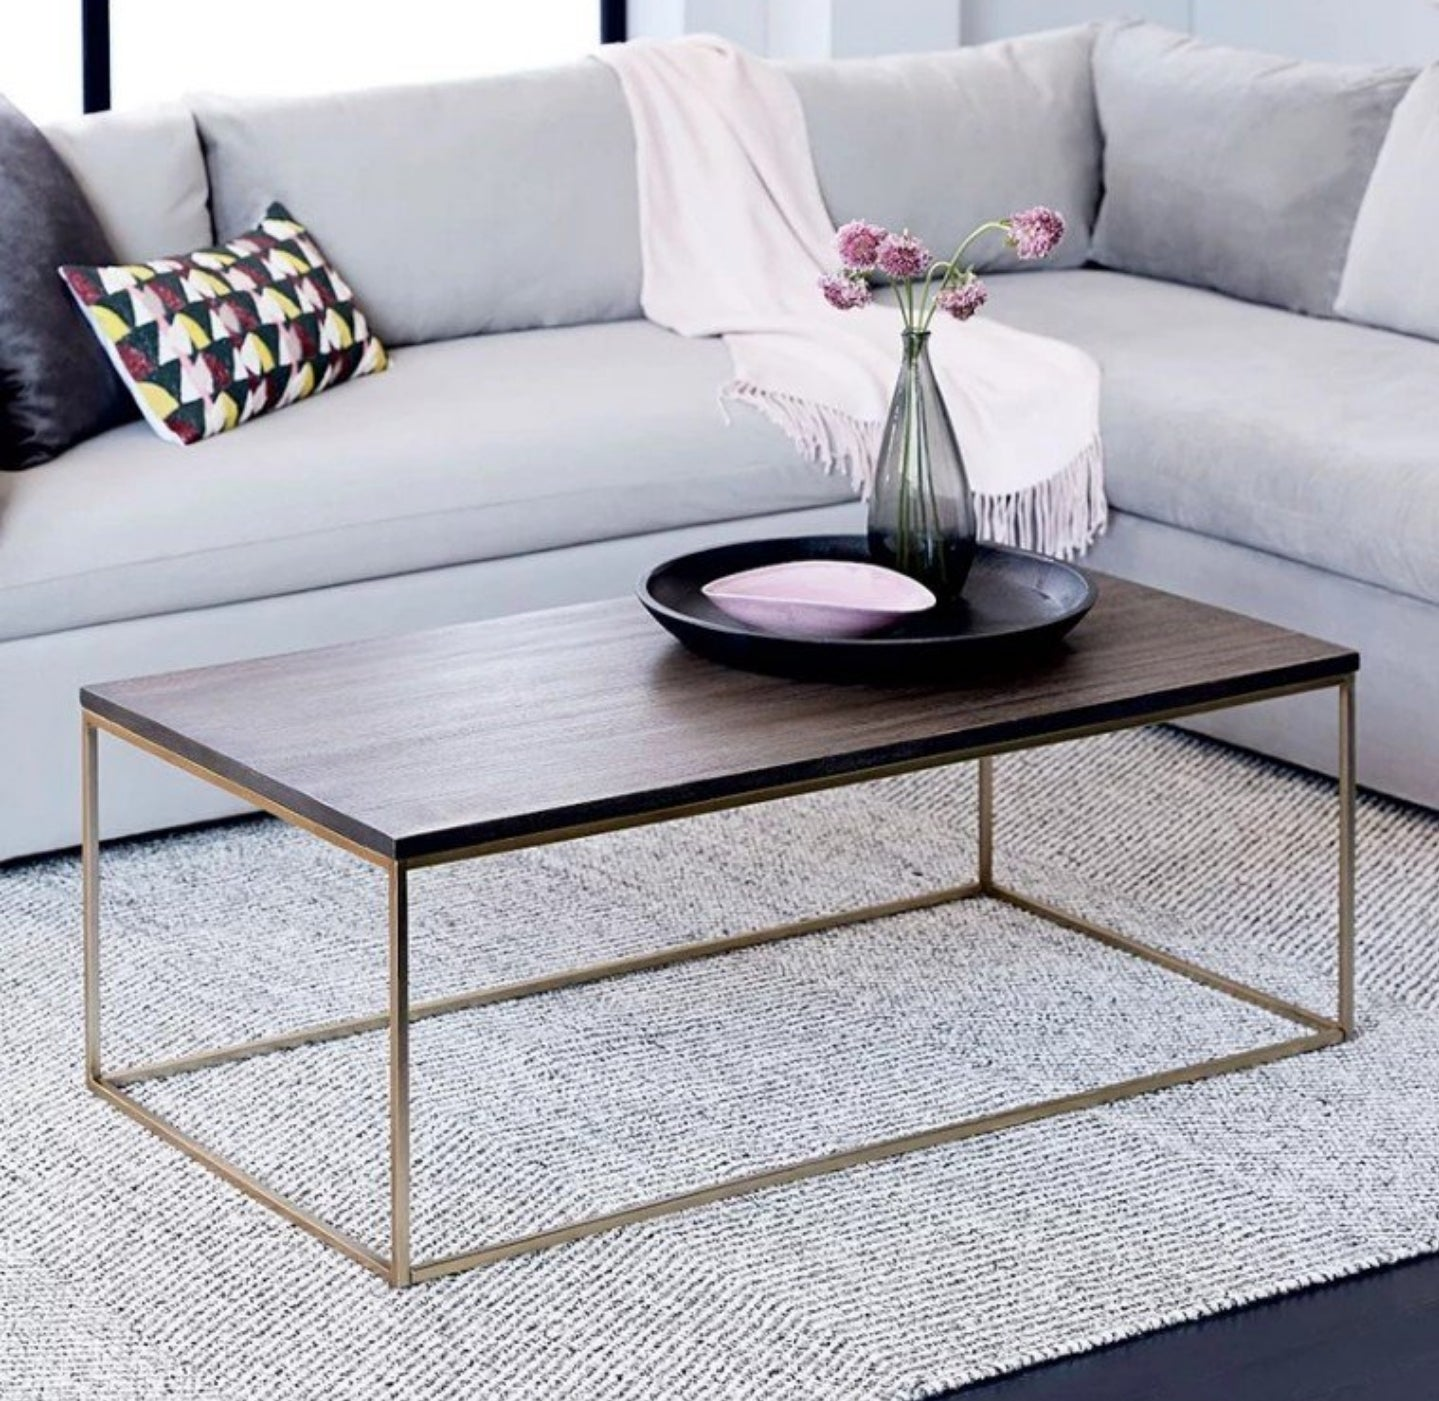 TOTEM Minimalist Solid Wood Coffee Table